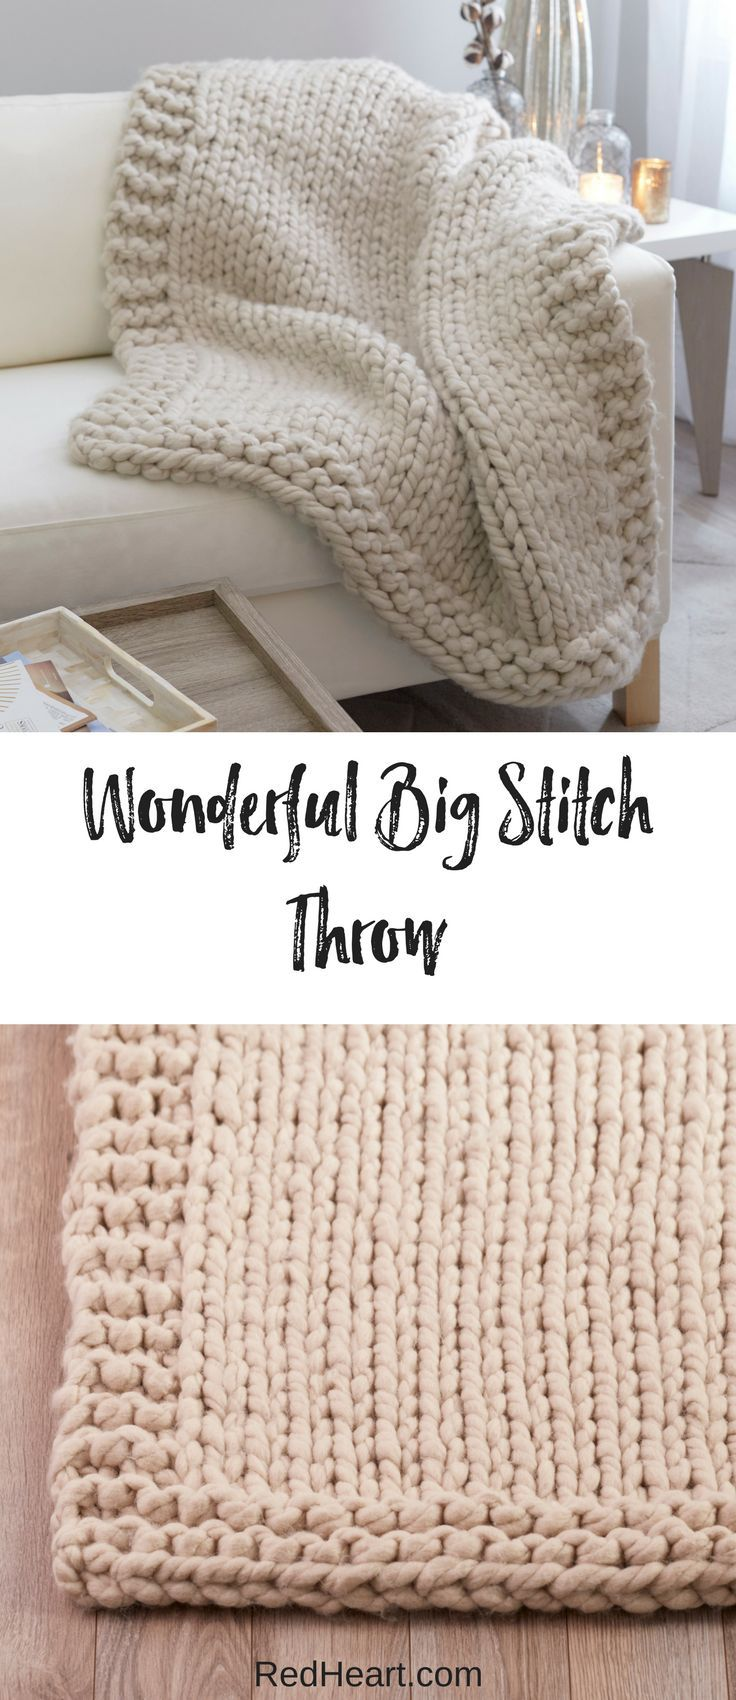 Knit this superbly cushy throw on big knitting needles and update your favorite …